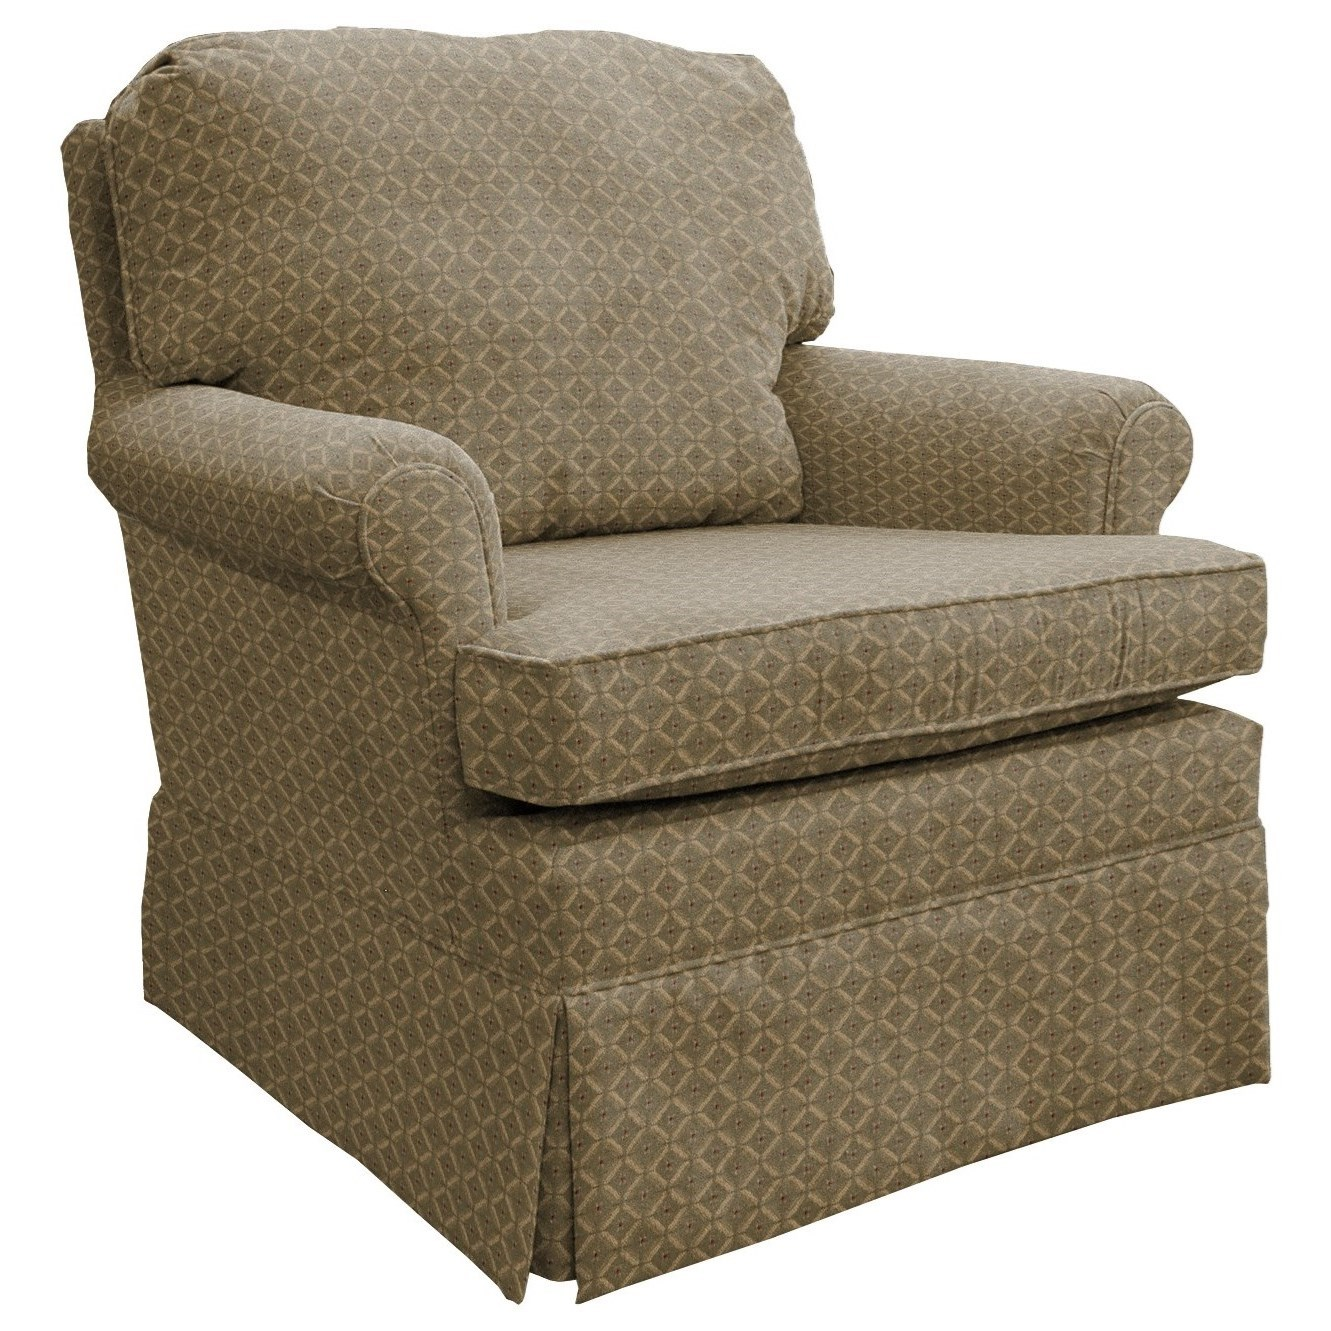 Best Home Furnishings Patoka Swivel Rocking Club Chair  - Item Number: 2619-18021